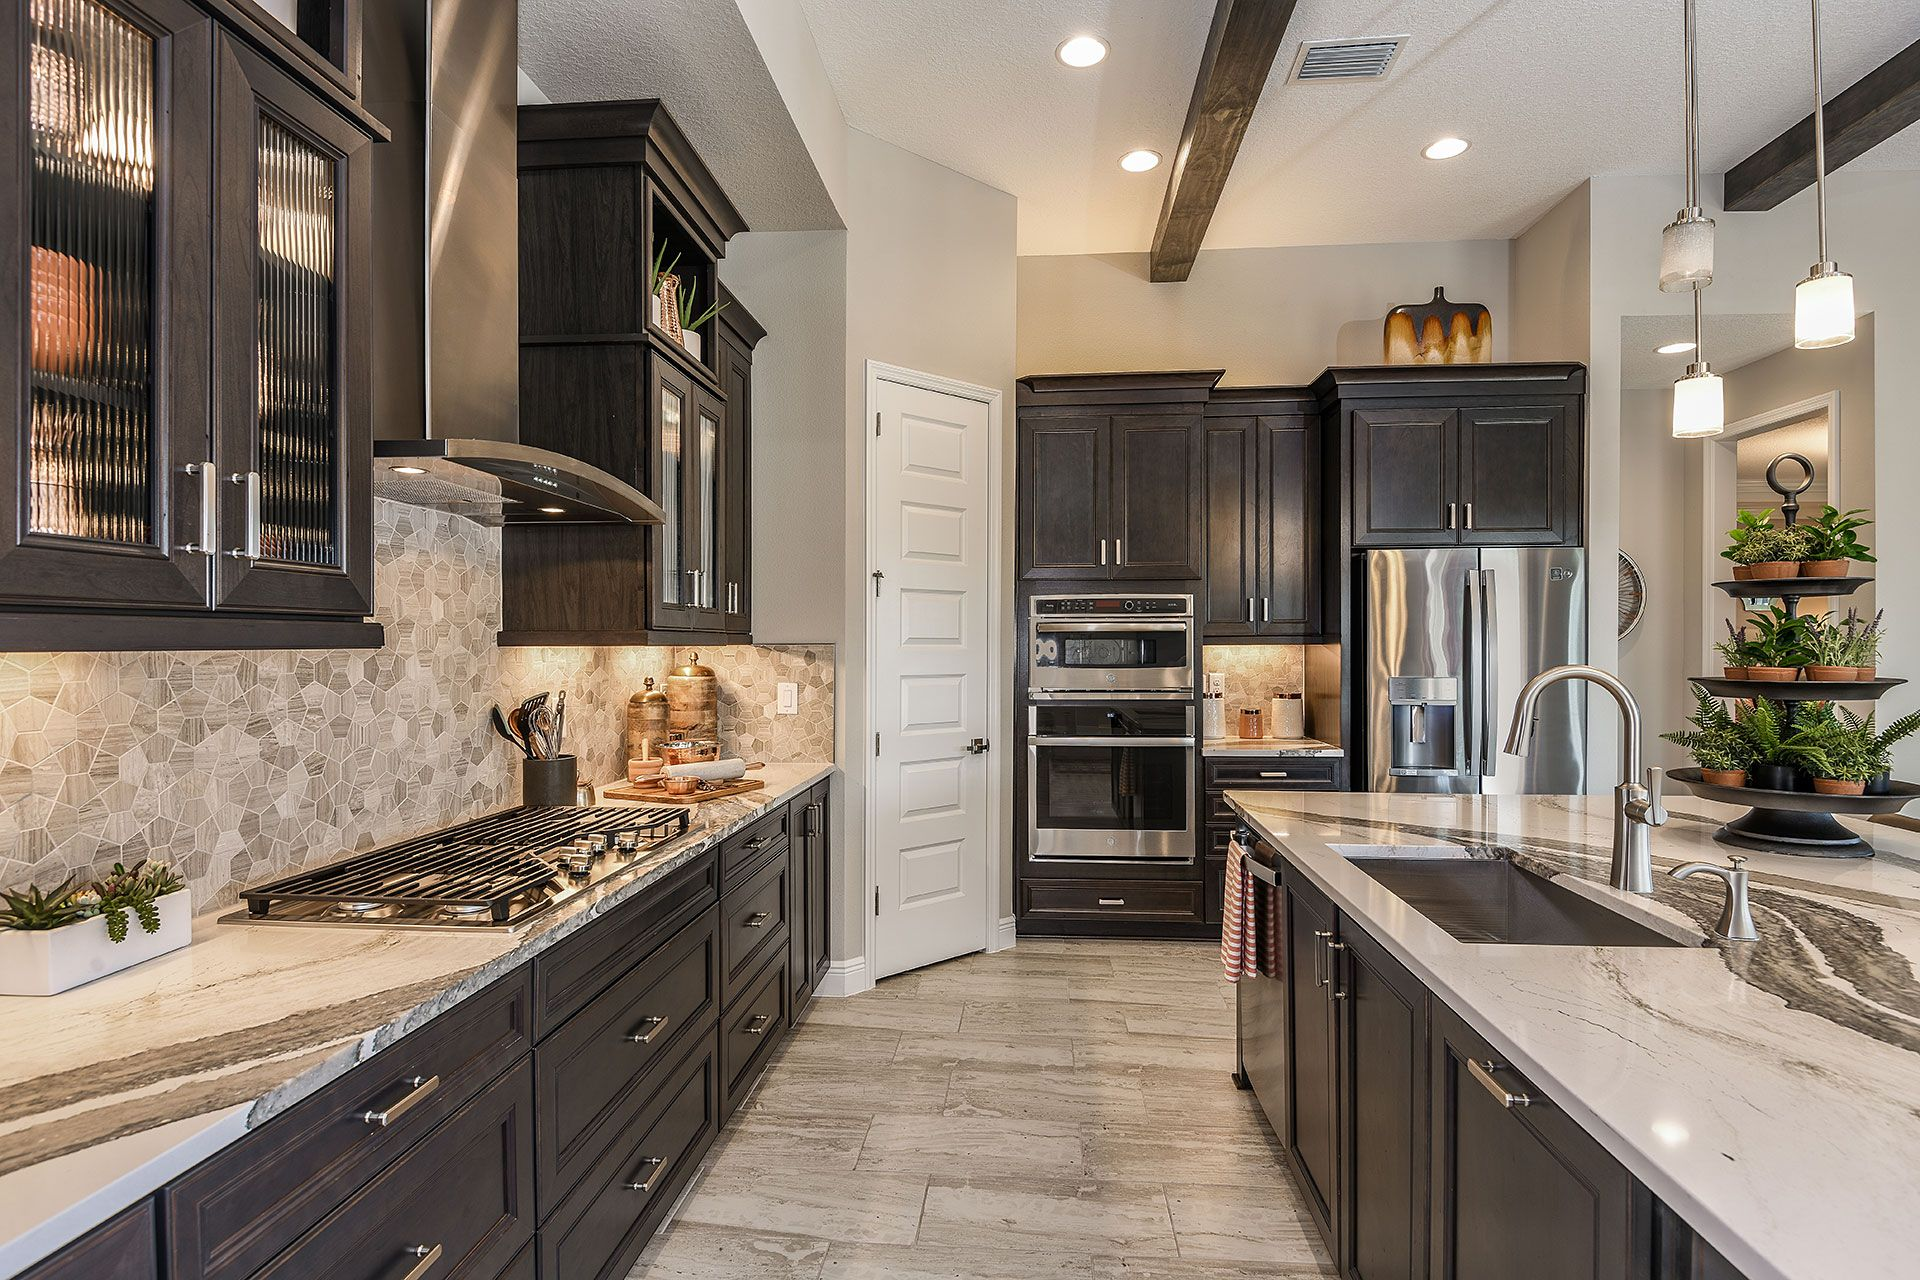 Kitchen featured in the Swann IV By Homes by WestBay in Tampa-St. Petersburg, FL